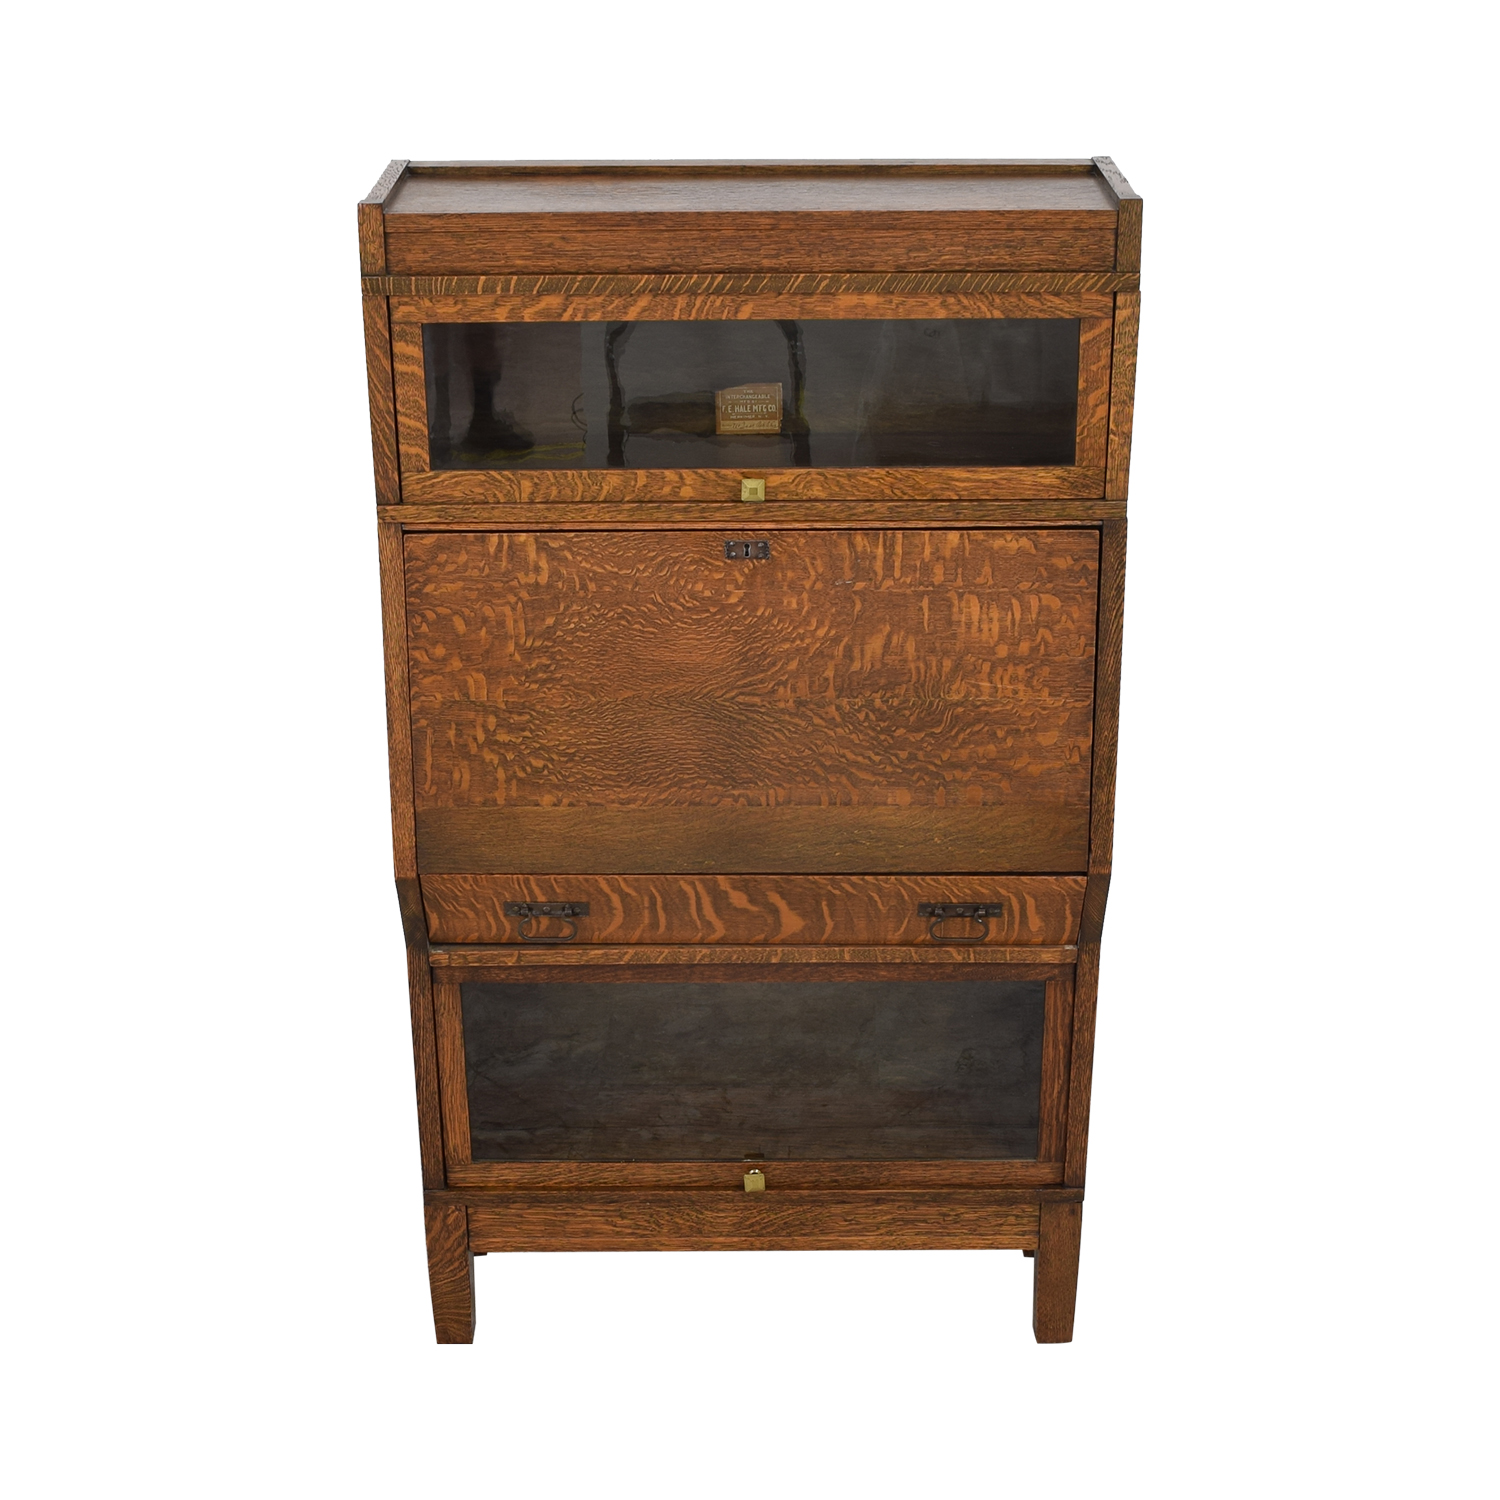 Hale Hale Manufacturing Early American Antique Secretary second hand